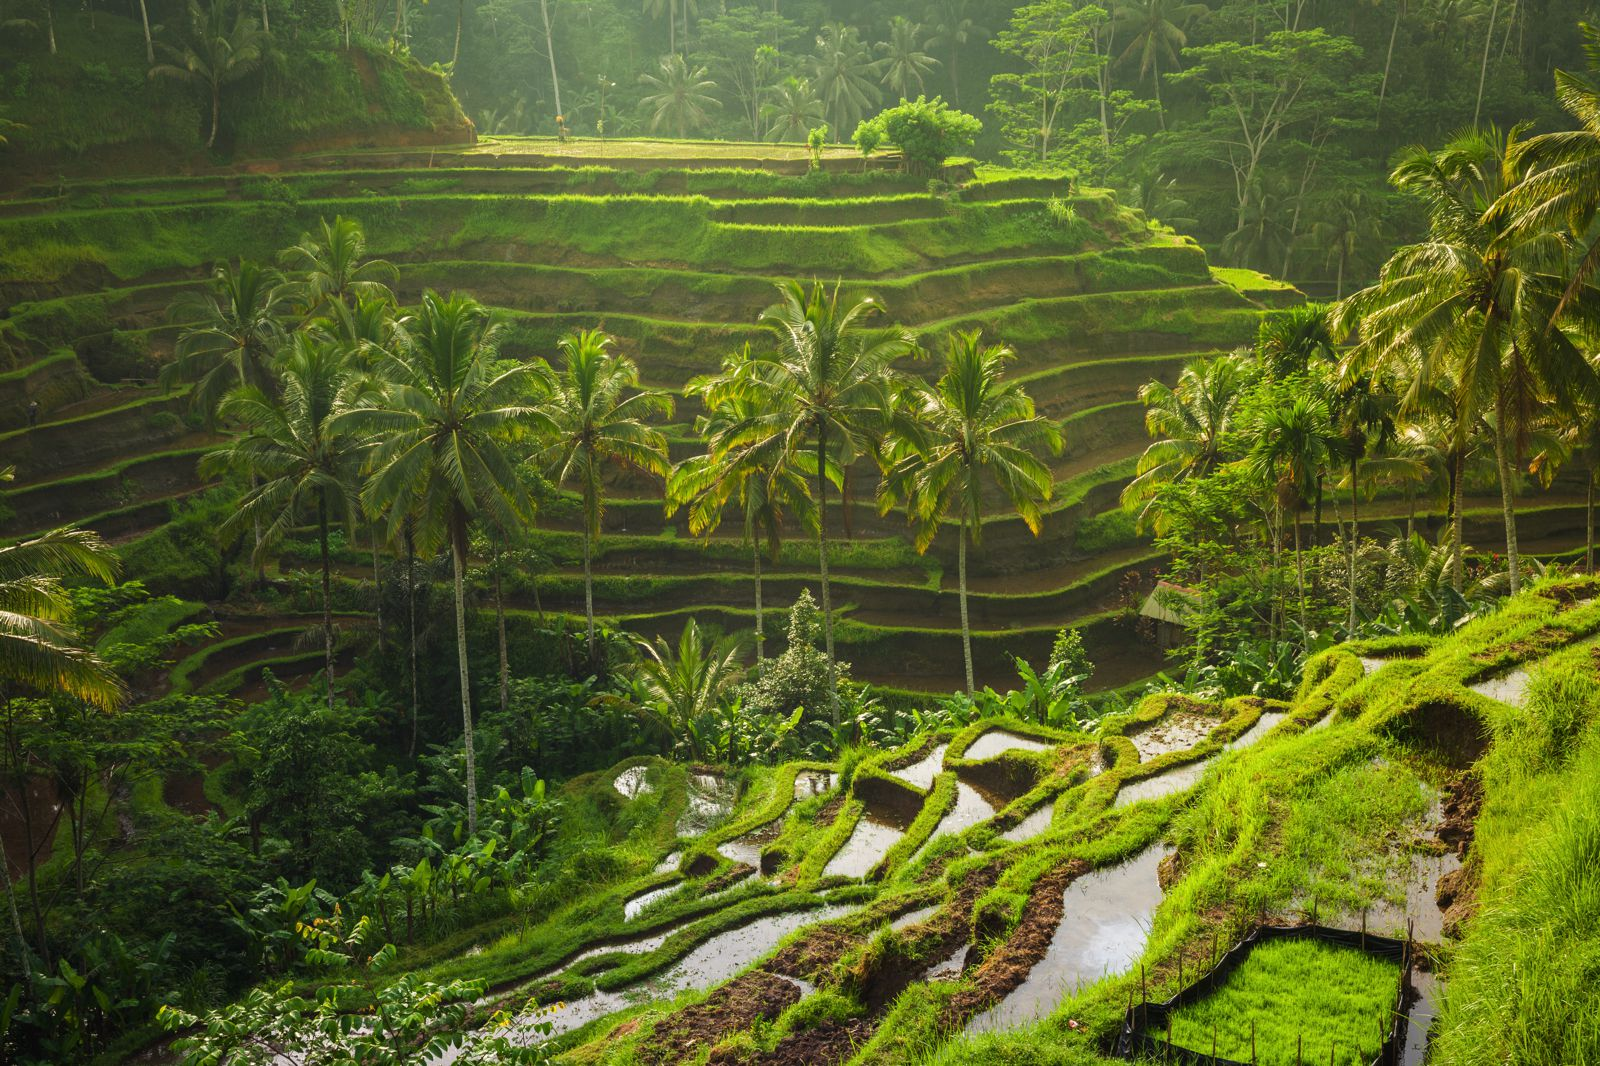 Complete Guide Of Things To See in Bali Guide (32)